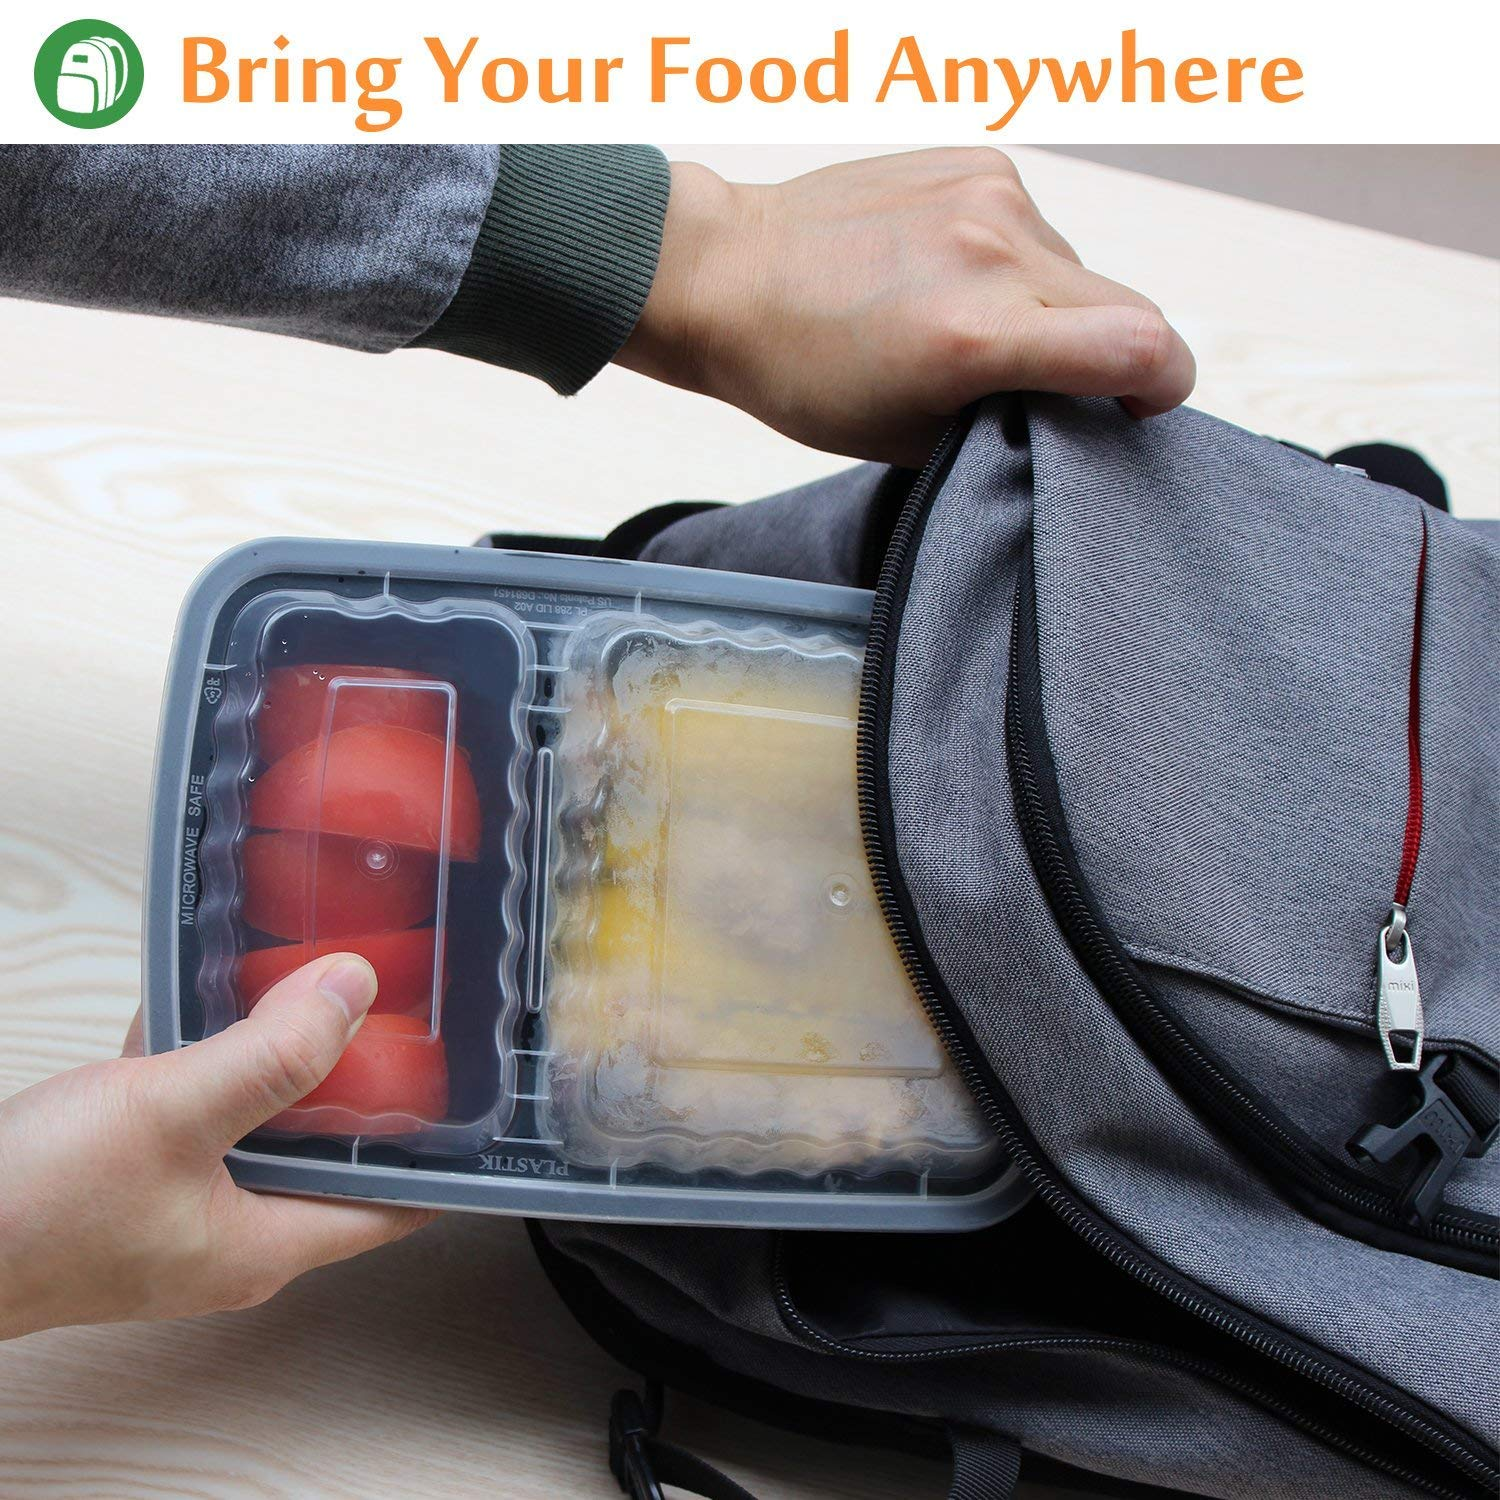 Enther Meal Prep Containers [20 Pack] 2 Compartment with Lids, Food Storage Bento Box | BPA Free | Stackable | Reusable Lunch Boxes, Microwave/Dishwasher/Freezer Safe,Portion Control (32 oz) by Enther (Image #3)